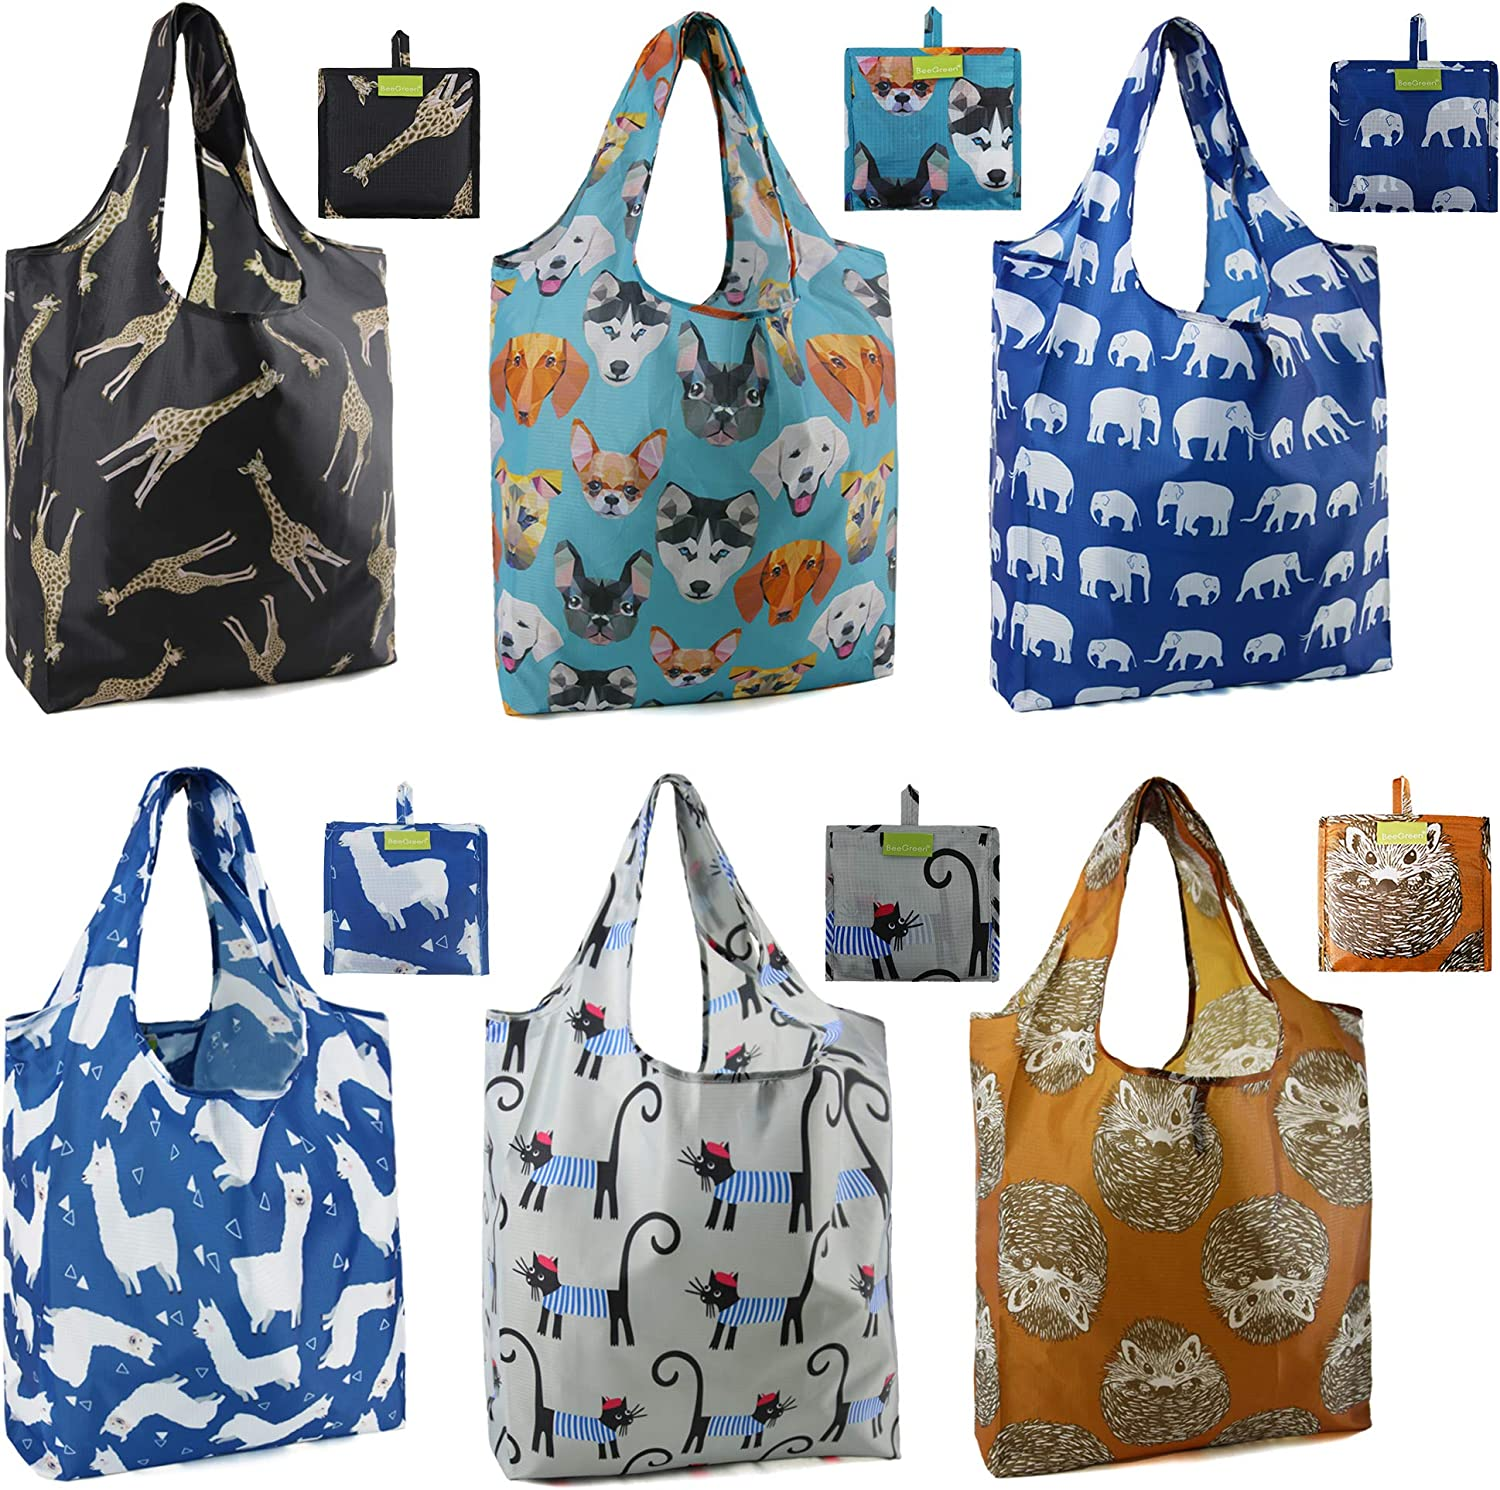 BeeGreen Reusable Grocery Bags Cute Dog Shopping Bags X-Large Durable Machine Washable Ripstop Foldable Bags with Pouch 6 Pack Hedgehog Elephant Cat Giraffe Alpaca